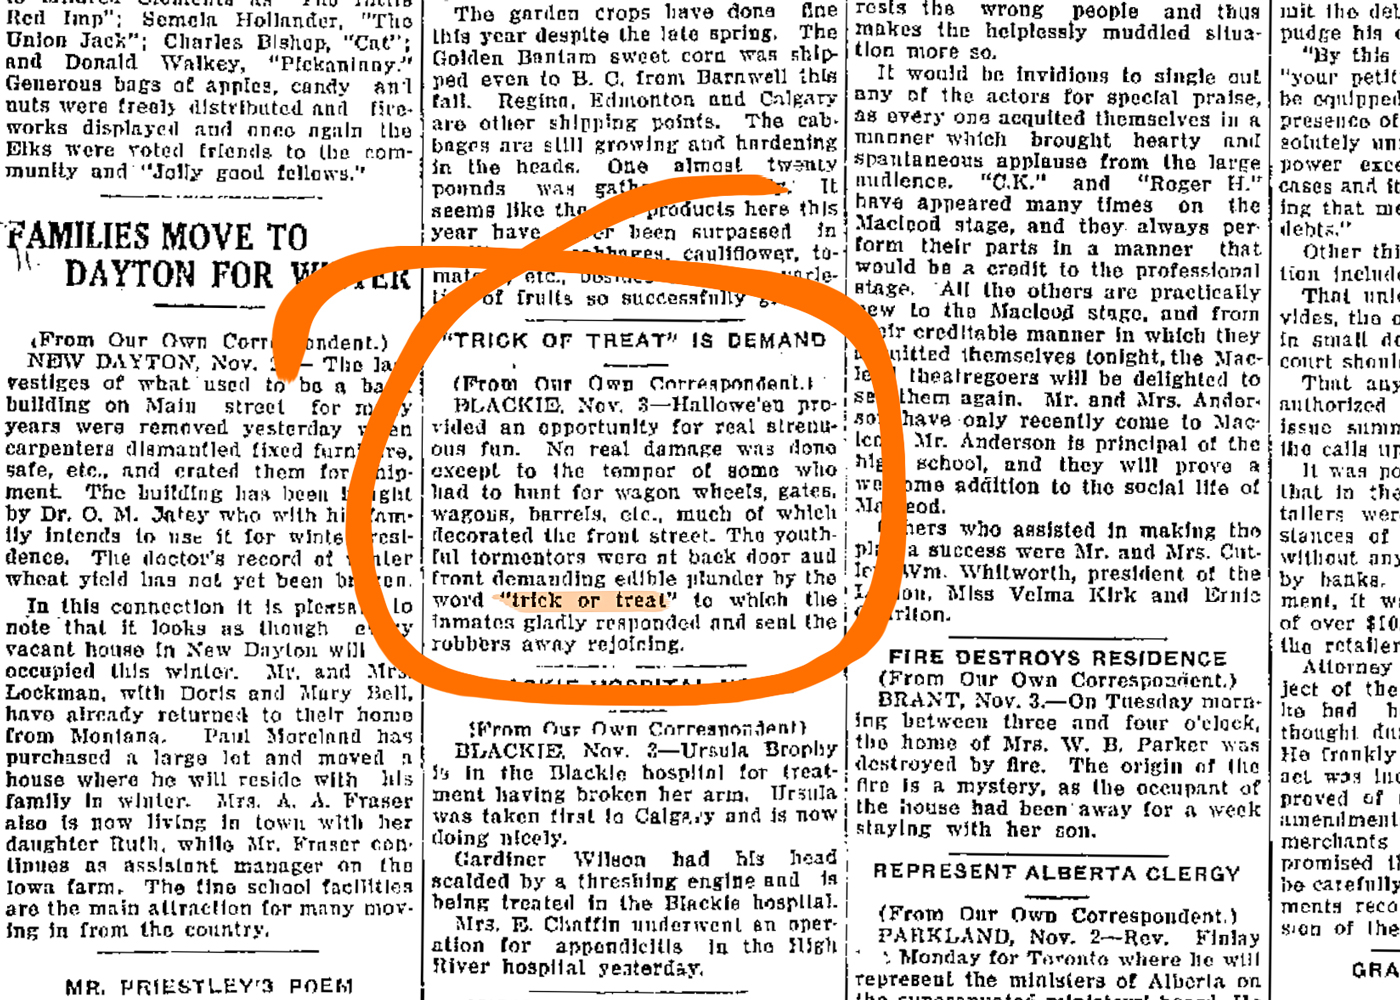 November 4, 1927: Possibly the first-ever use of the term